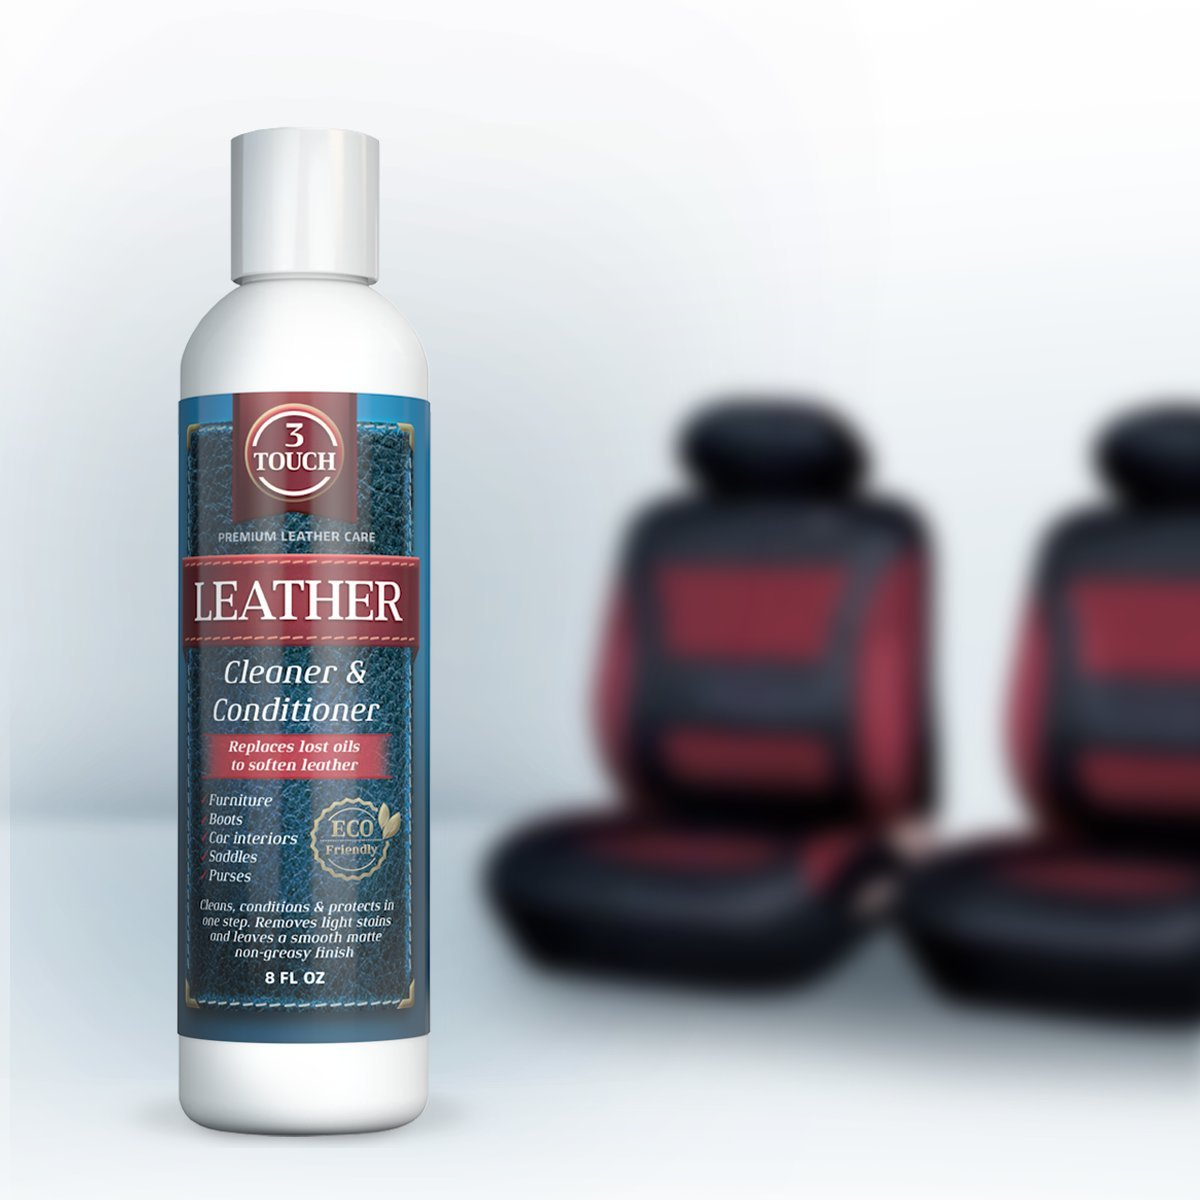 3-in-1 Leather Cleaner by 3Touch, Inc. (Top Rated)